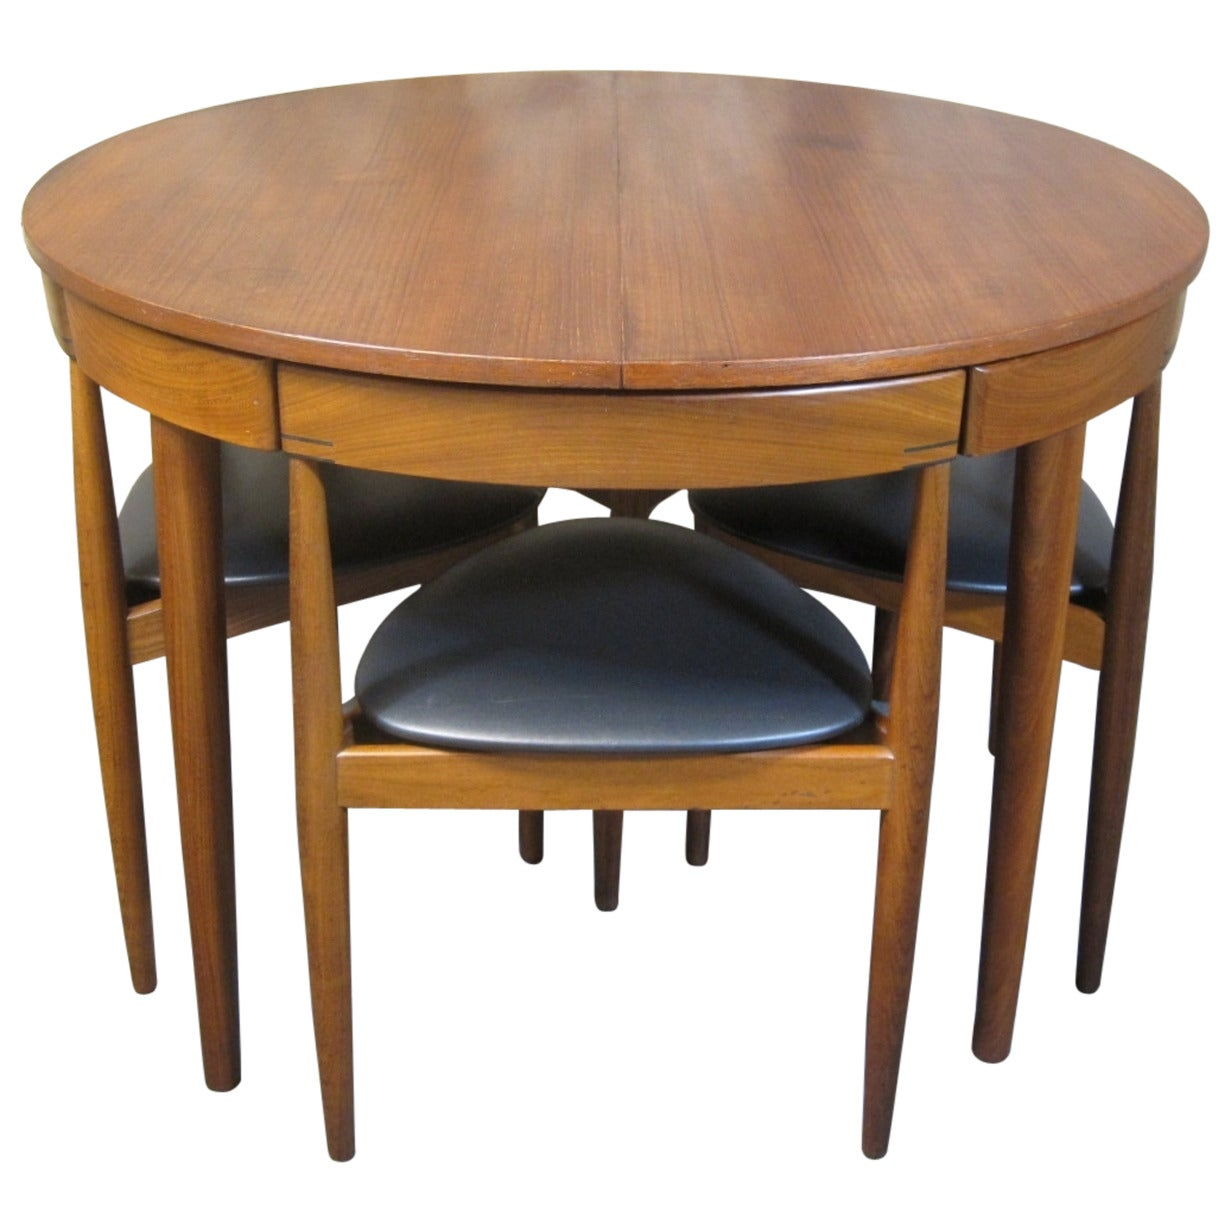 Mid Century Dining Tables : 3025392 1 from hwiki.us size 1230 x 1230 jpeg 142kB